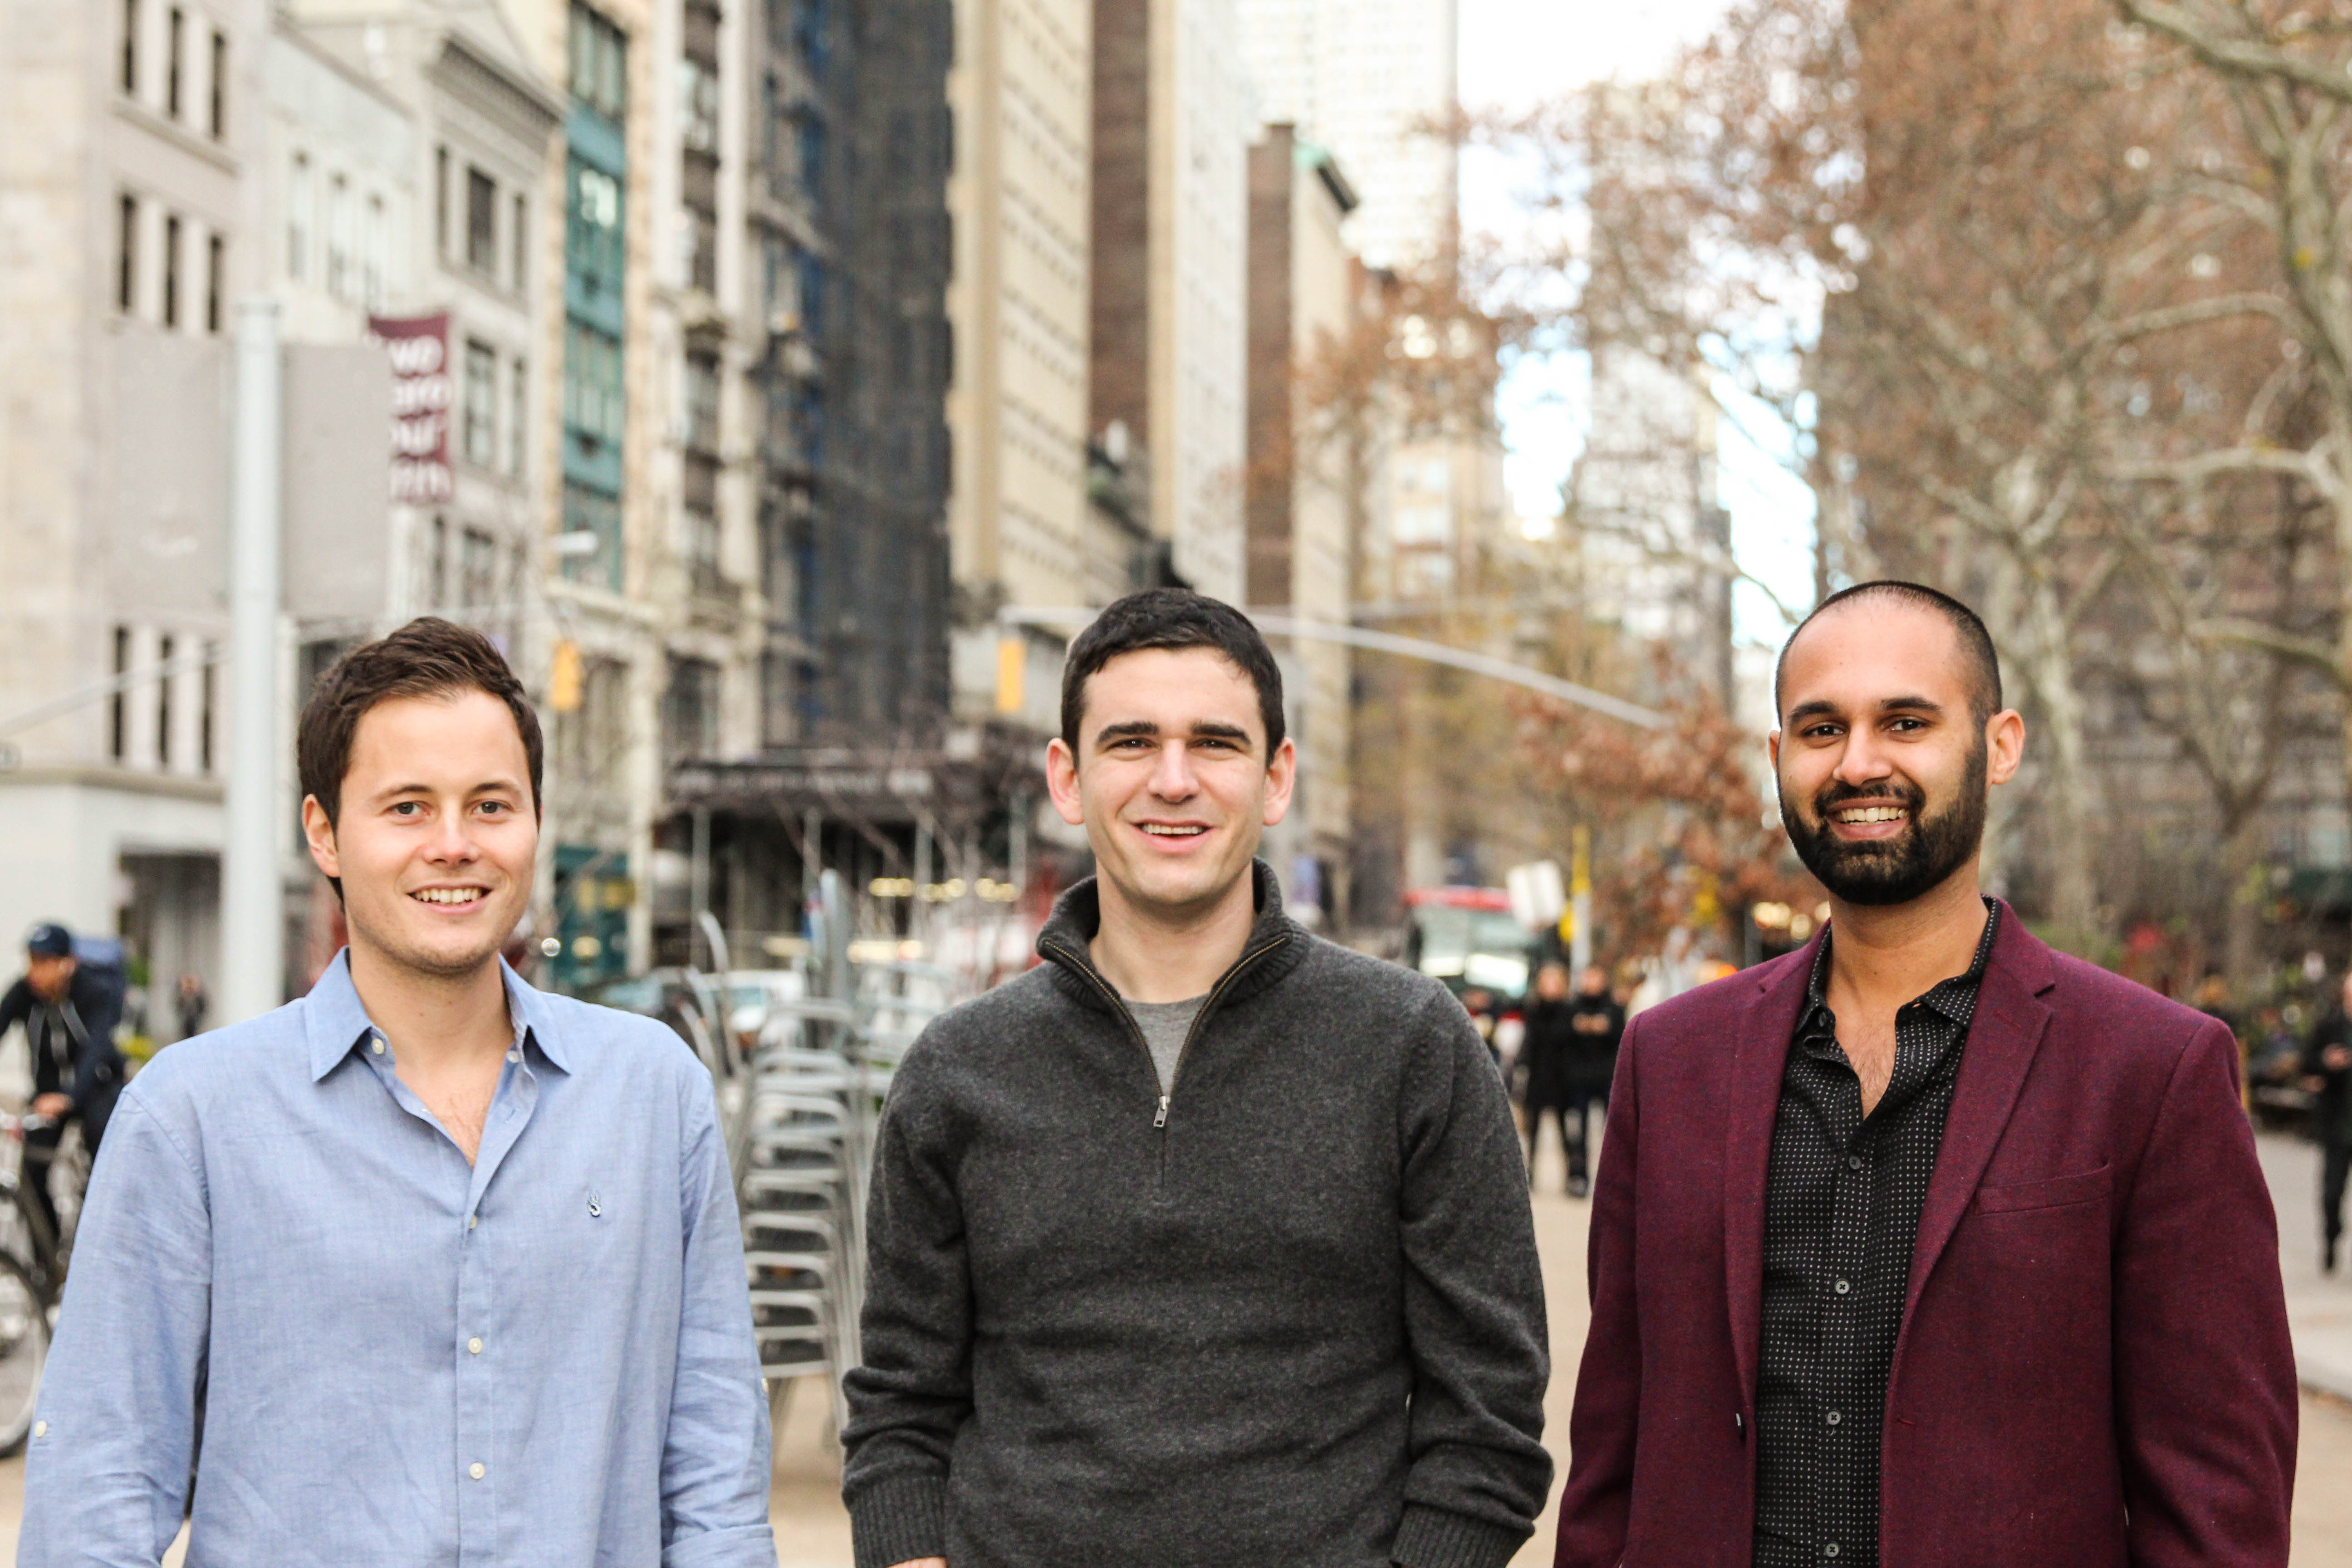 SeatGeek raises $57M and acquires Israel-based TopTix to take on